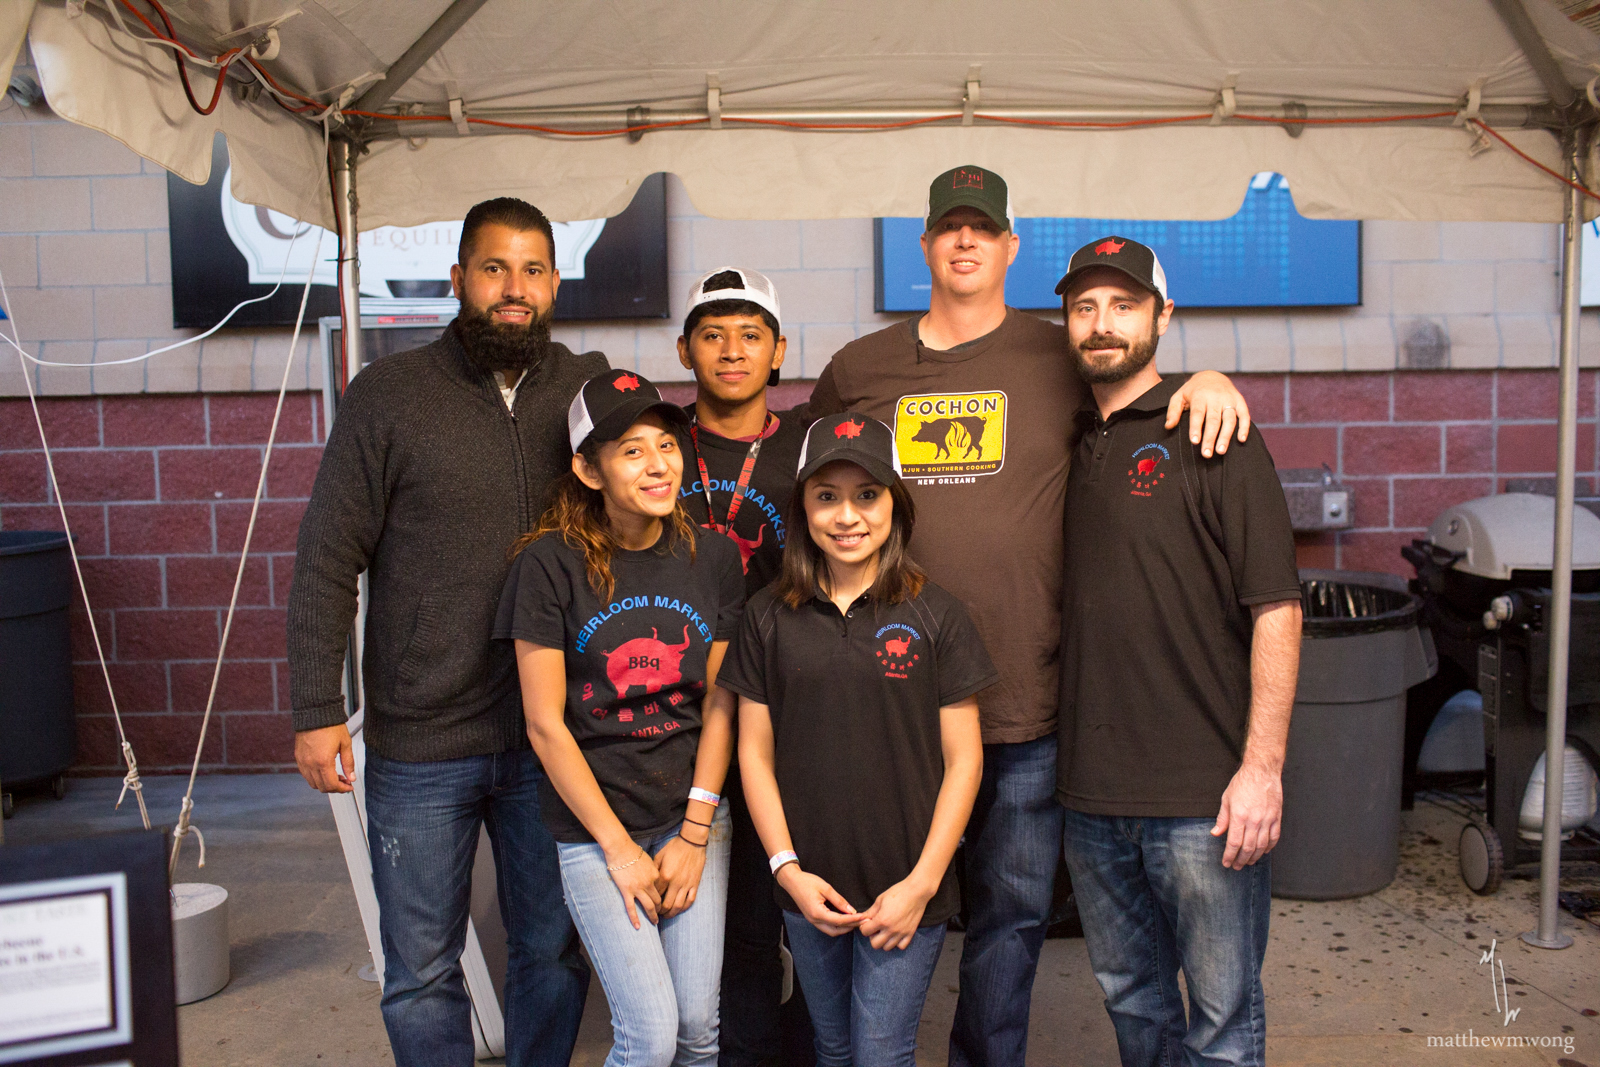 Chef Cody Taylor's team at Heirloom Market BBQ